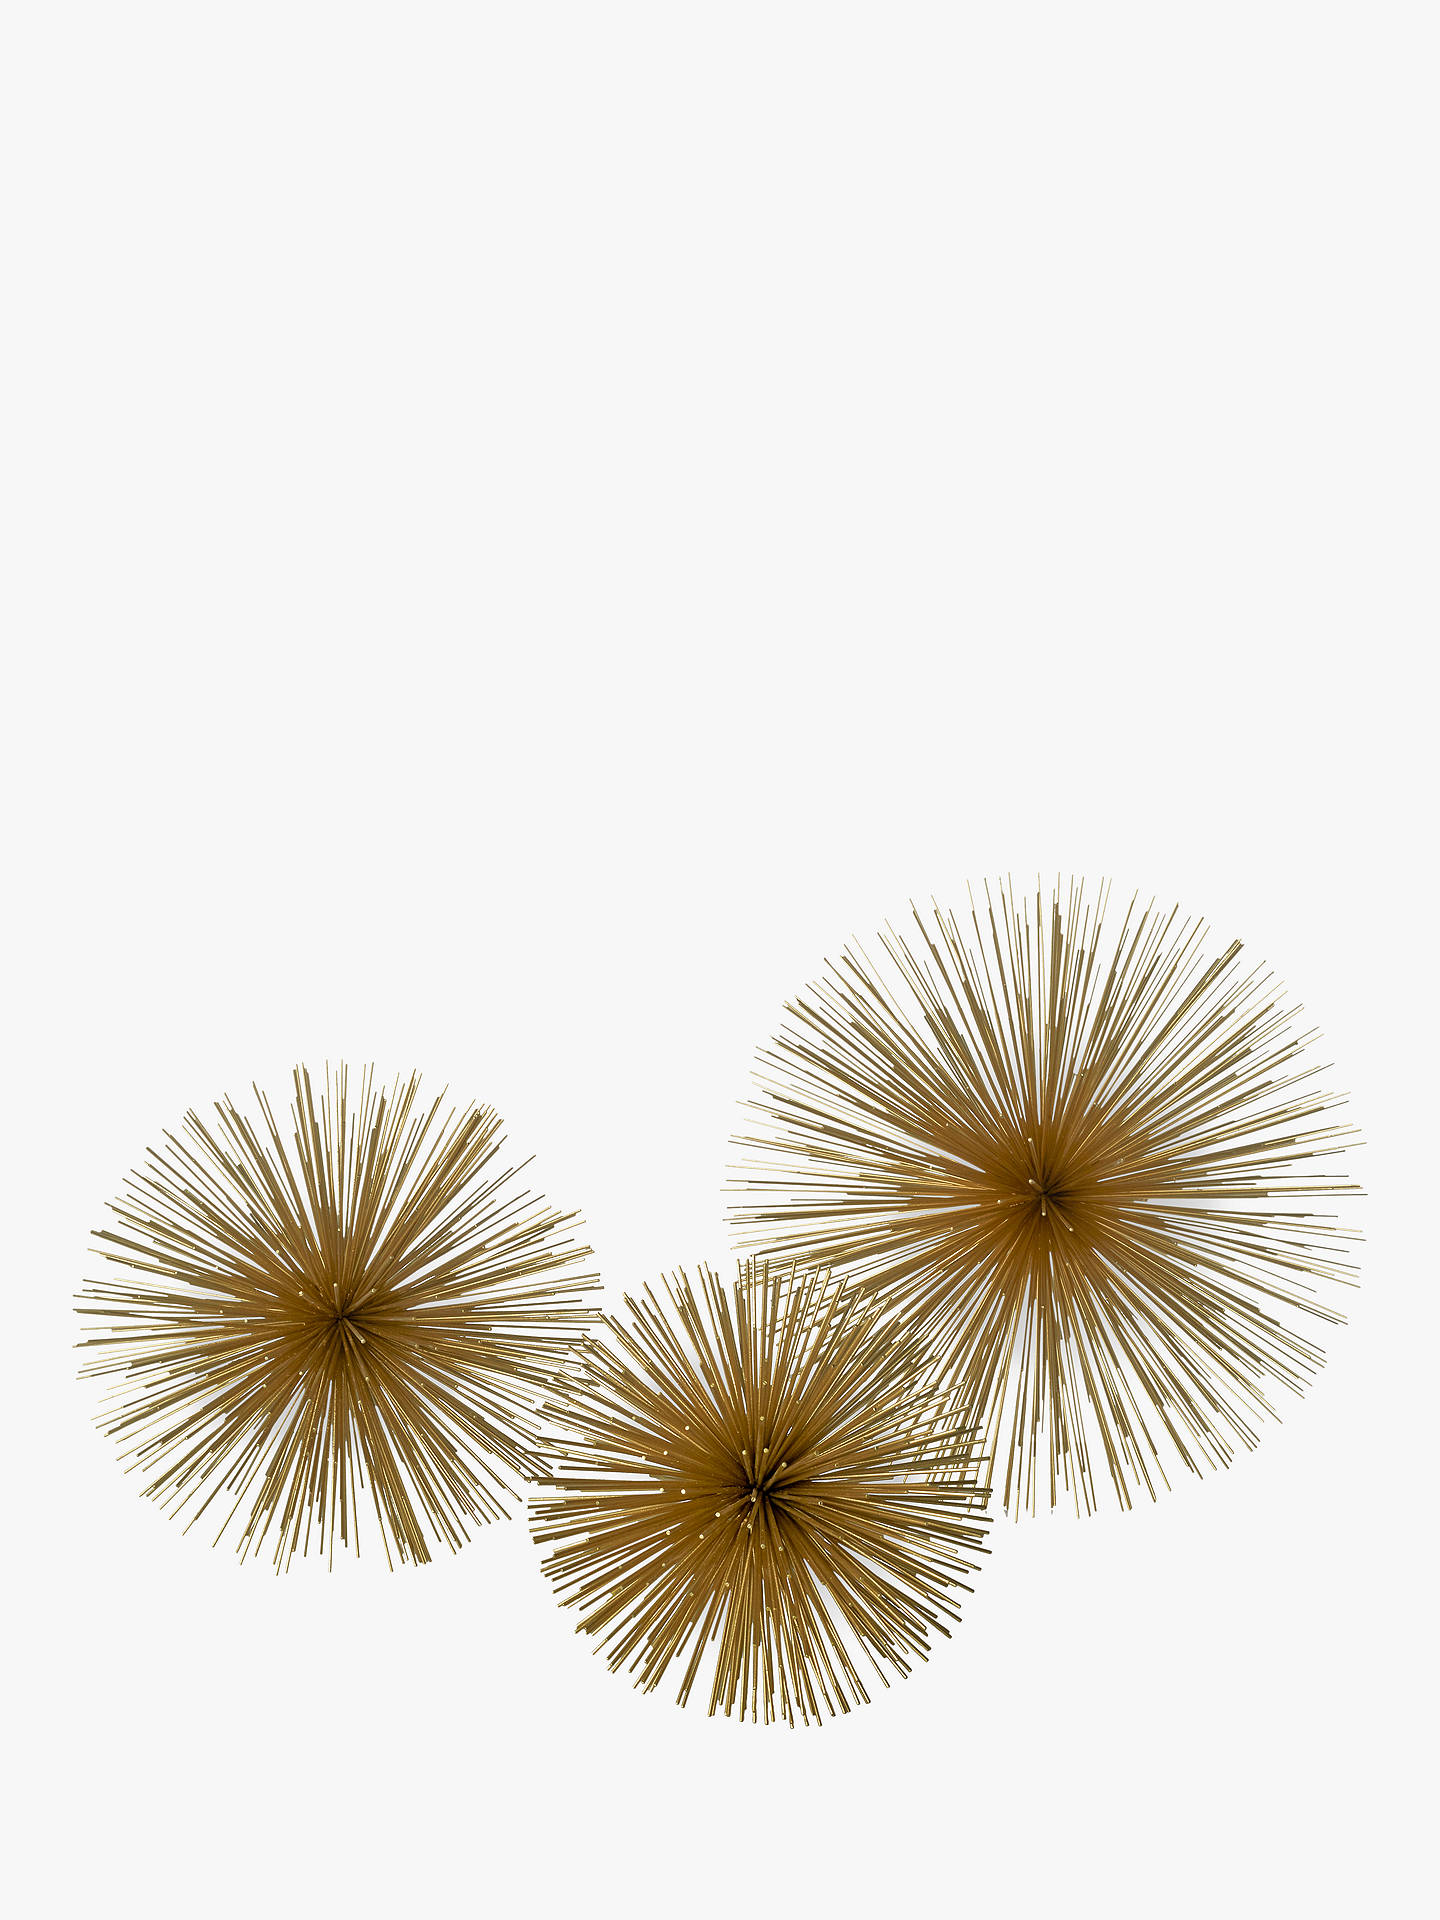 BuyPols Potten Brass Prickle Decorative Ornament, Small Online at johnlewis.com